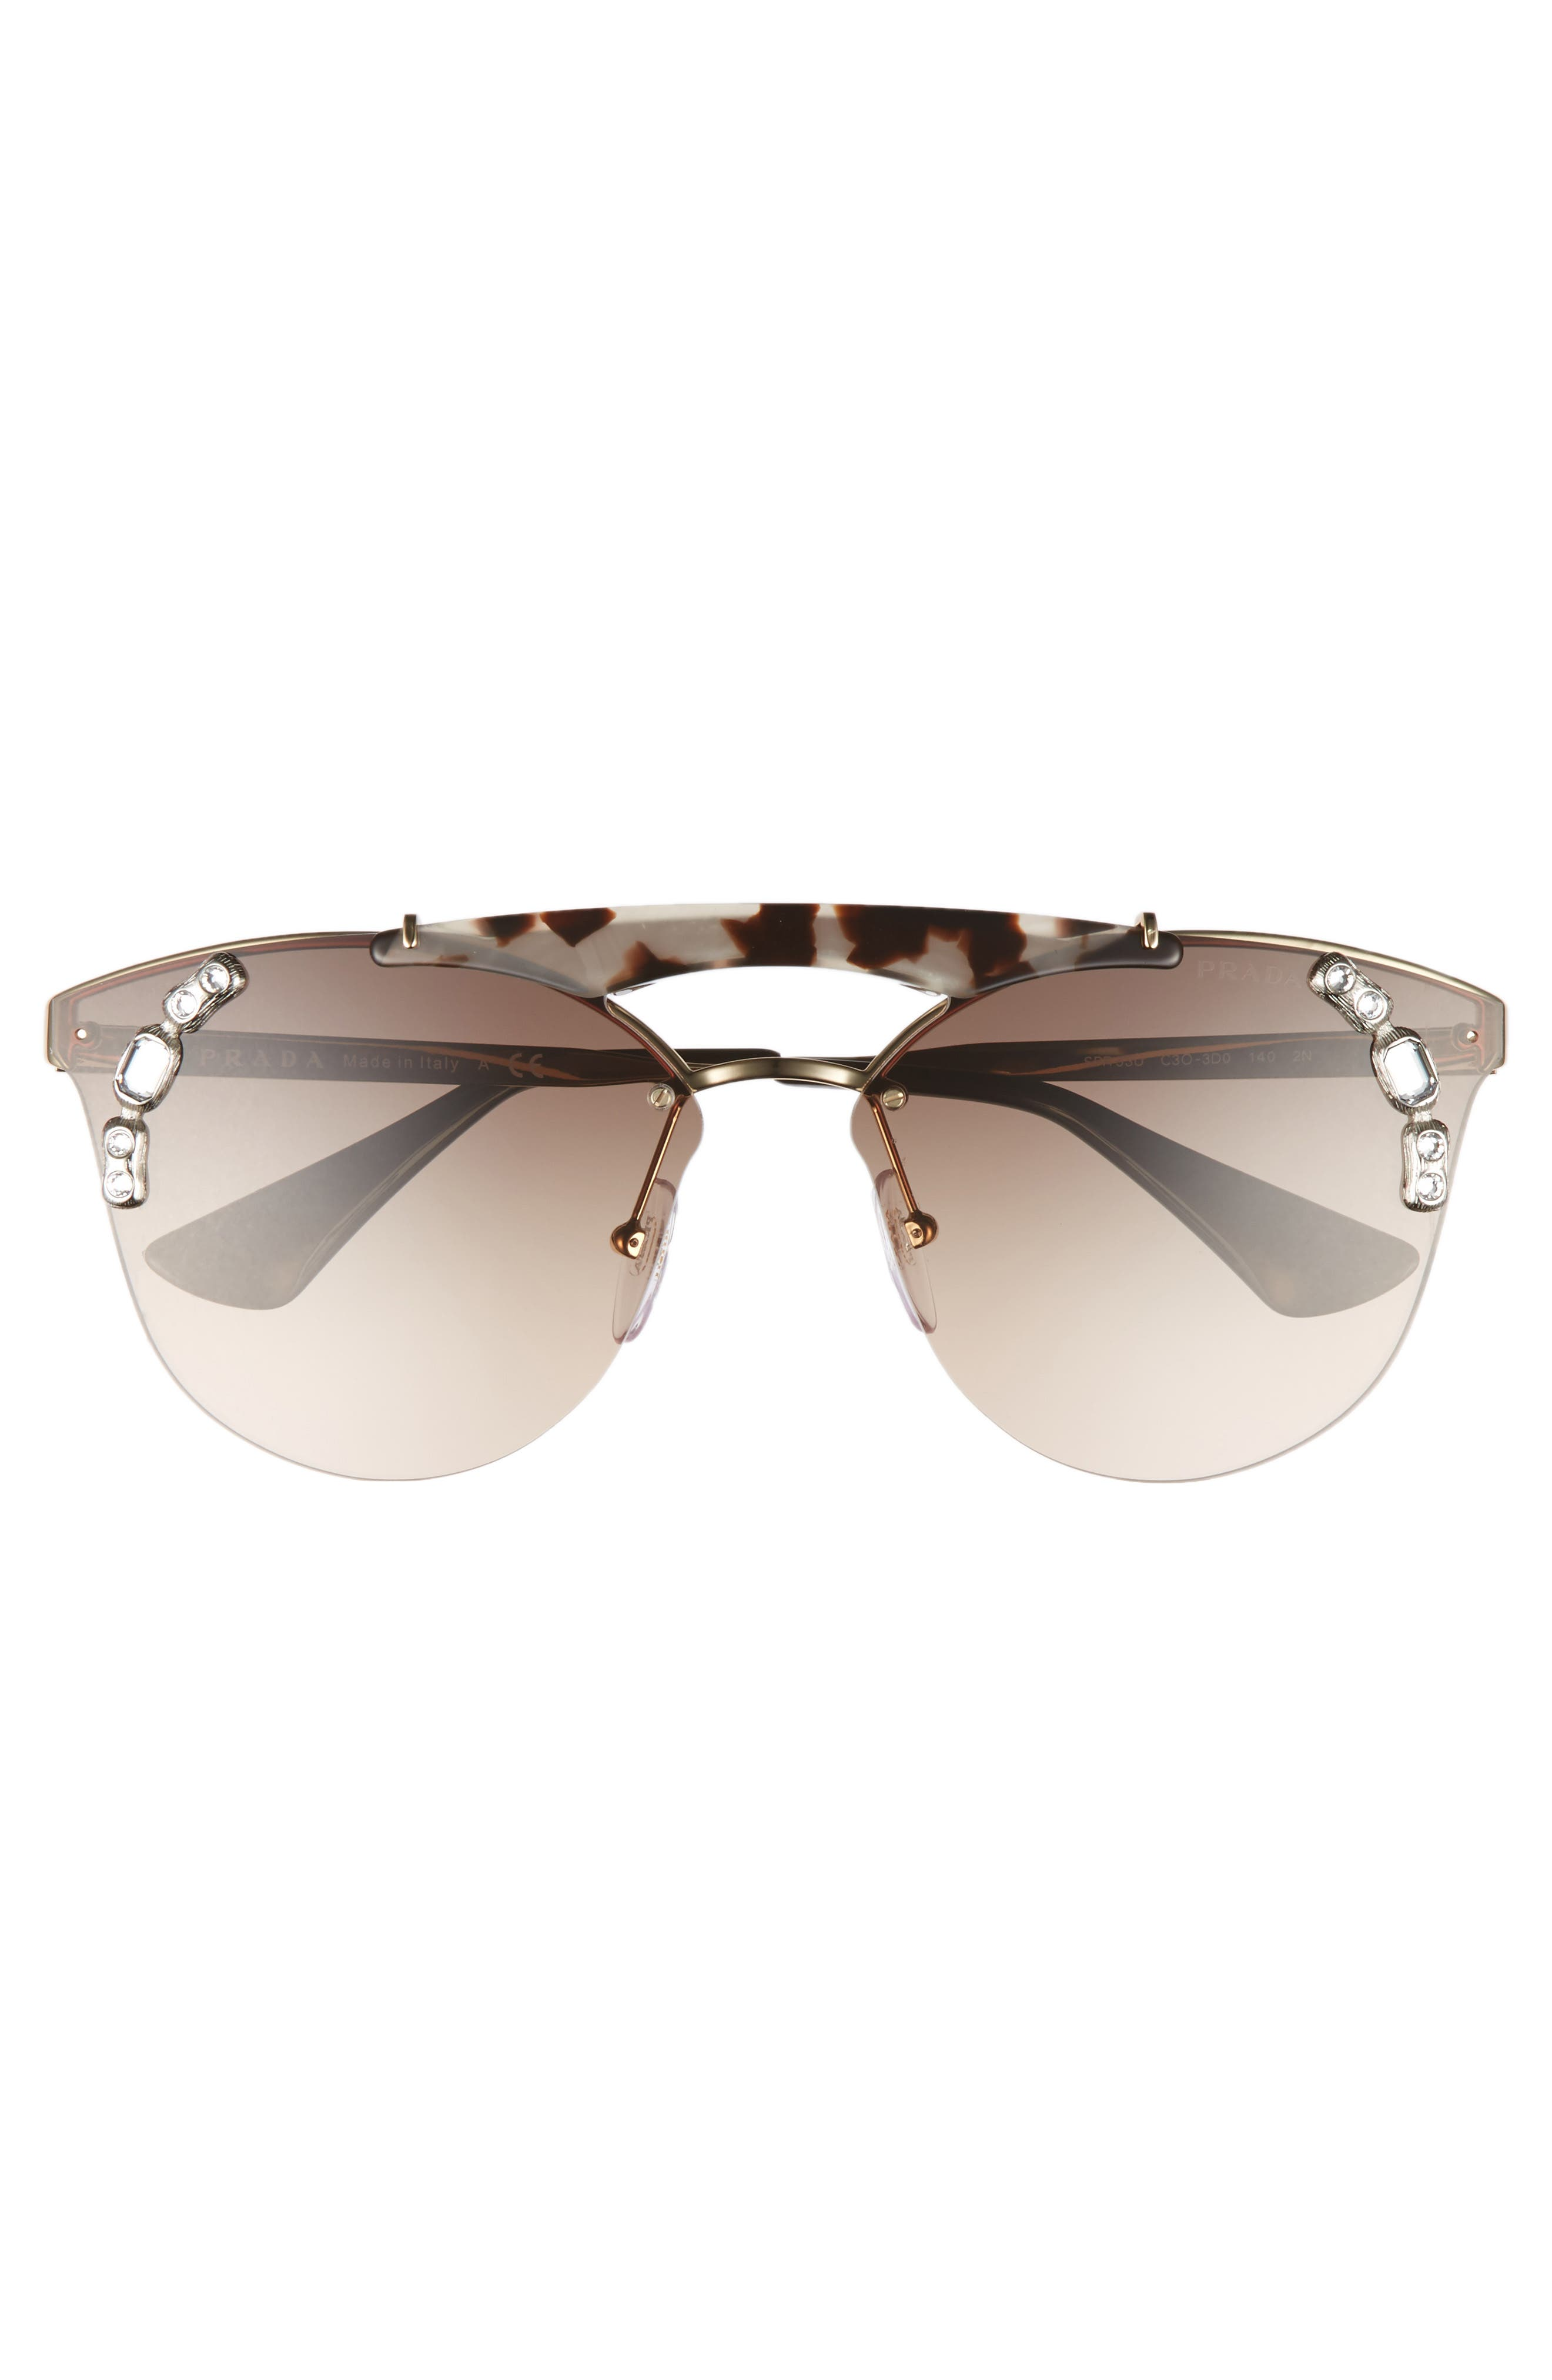 53mm Embellished Rimless Sunglasses,                             Alternate thumbnail 4, color,